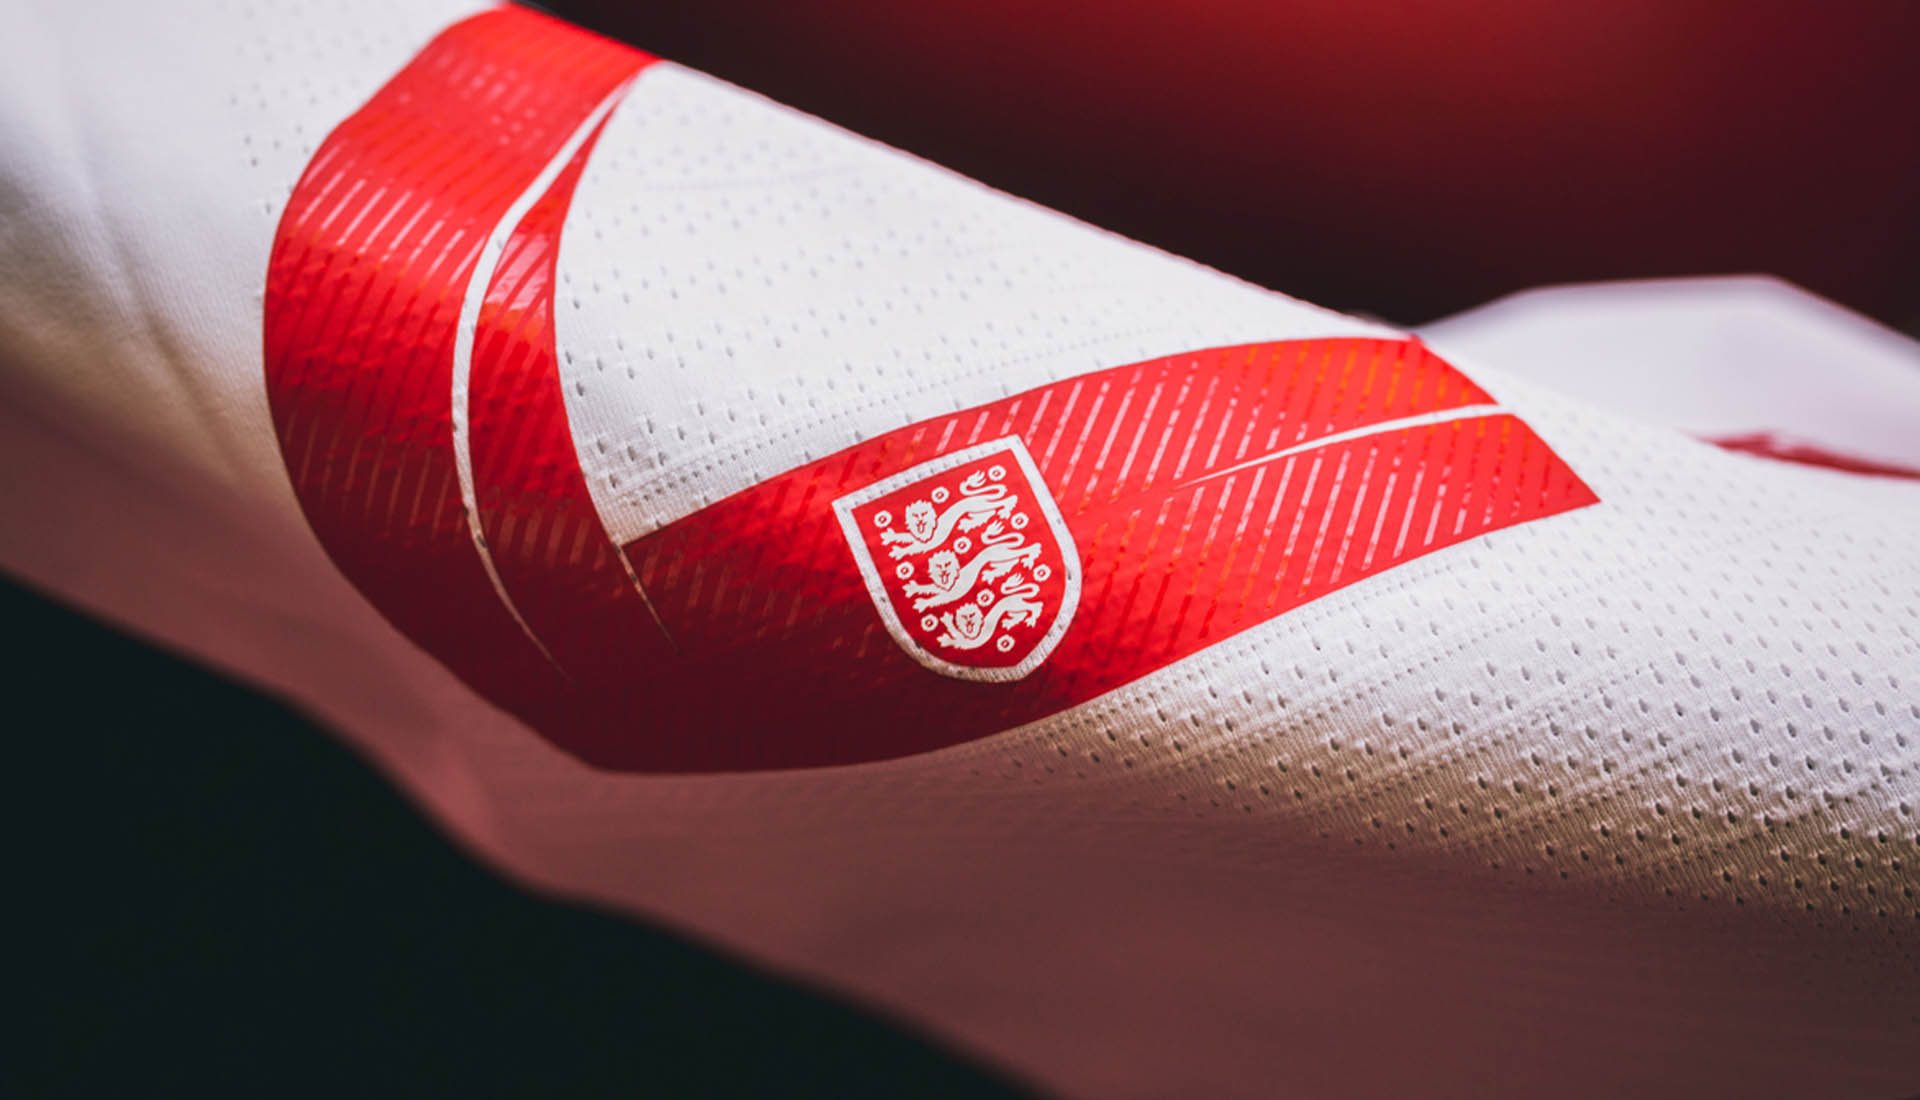 Wonderful England Football World Cup 2018 - england-world-cup-typography-craig-ward-soccerbible_0000_layer-2  Pictures_714187 .jpg